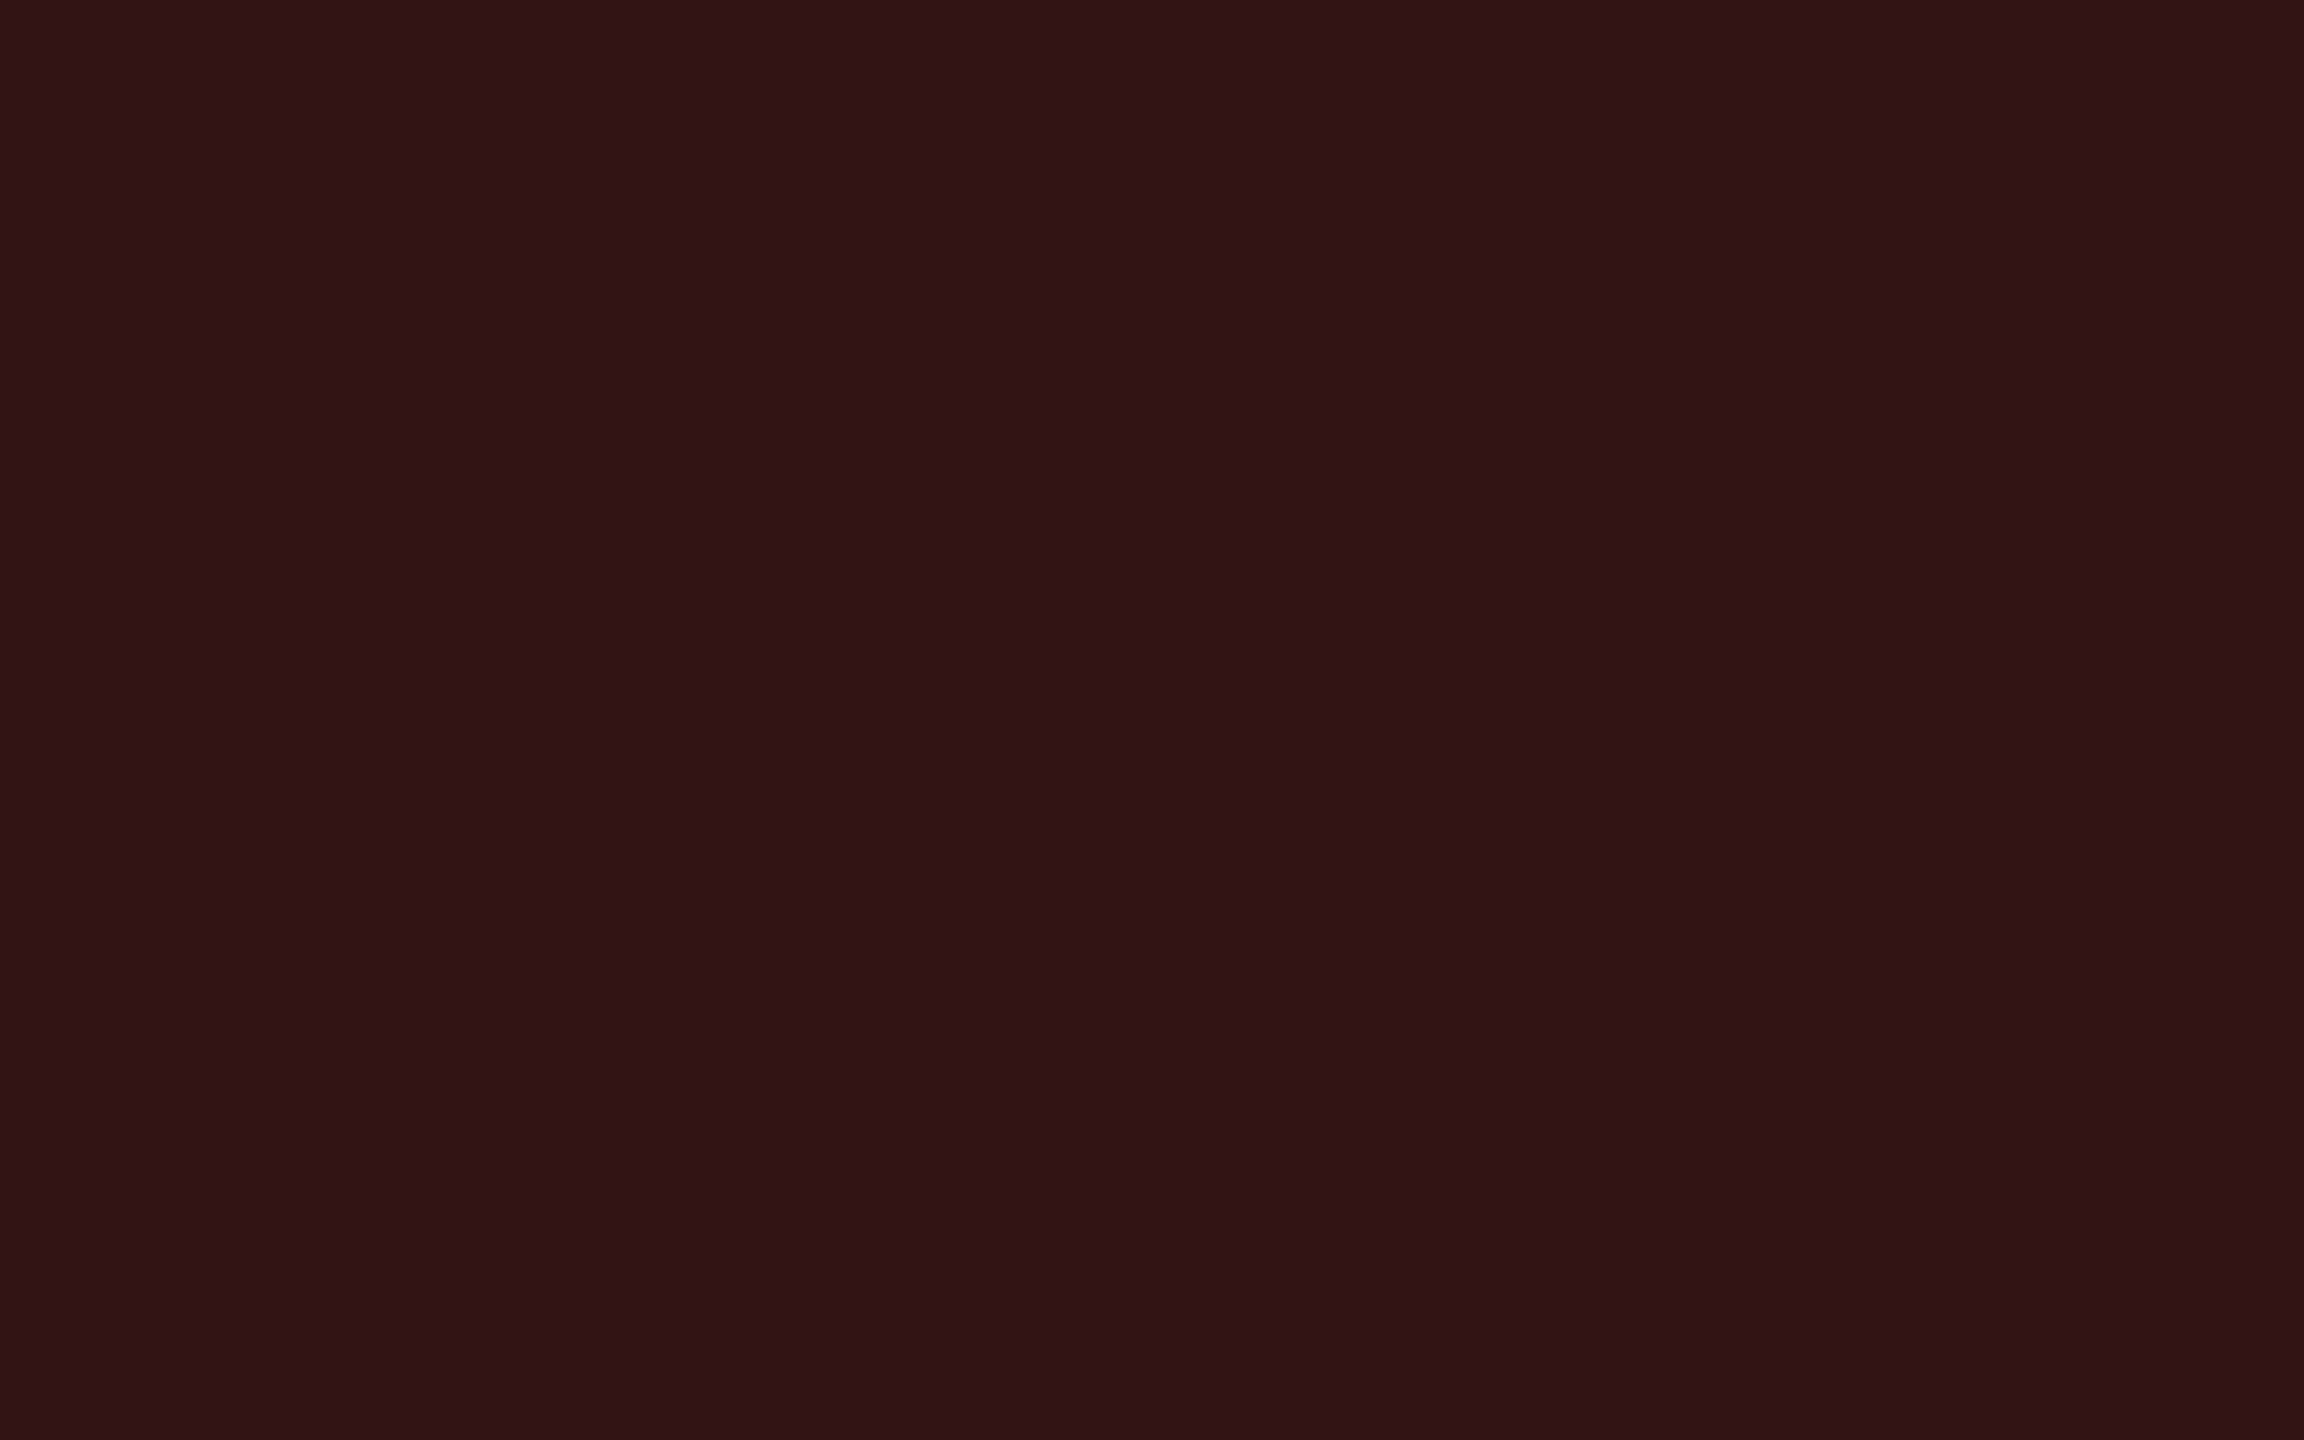 2304x1440 Seal Brown Solid Color Background